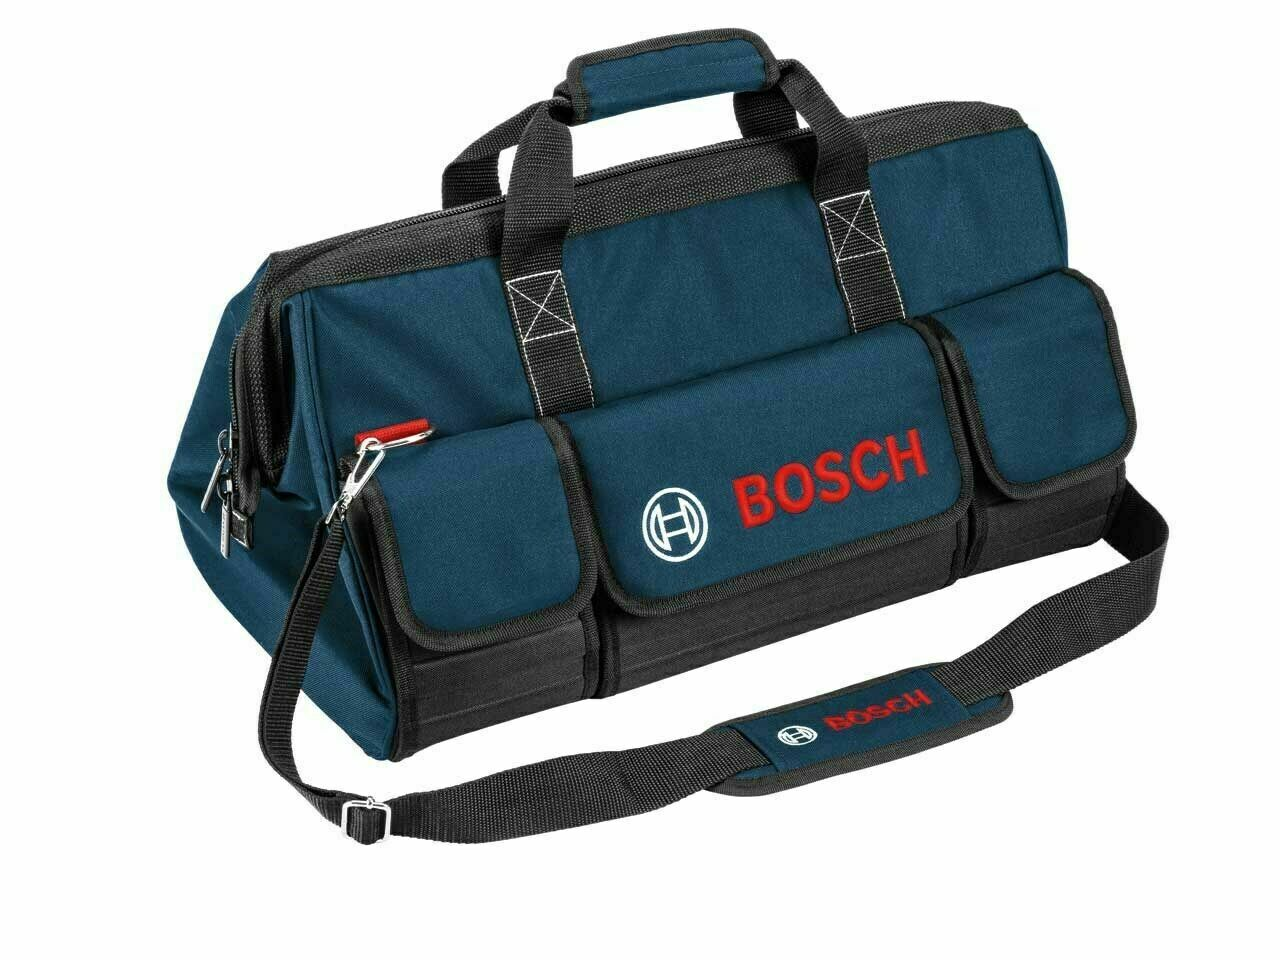 [Bosch] 1600A003BJ MBAG+ Medium Carry Bag For Cordless Tools